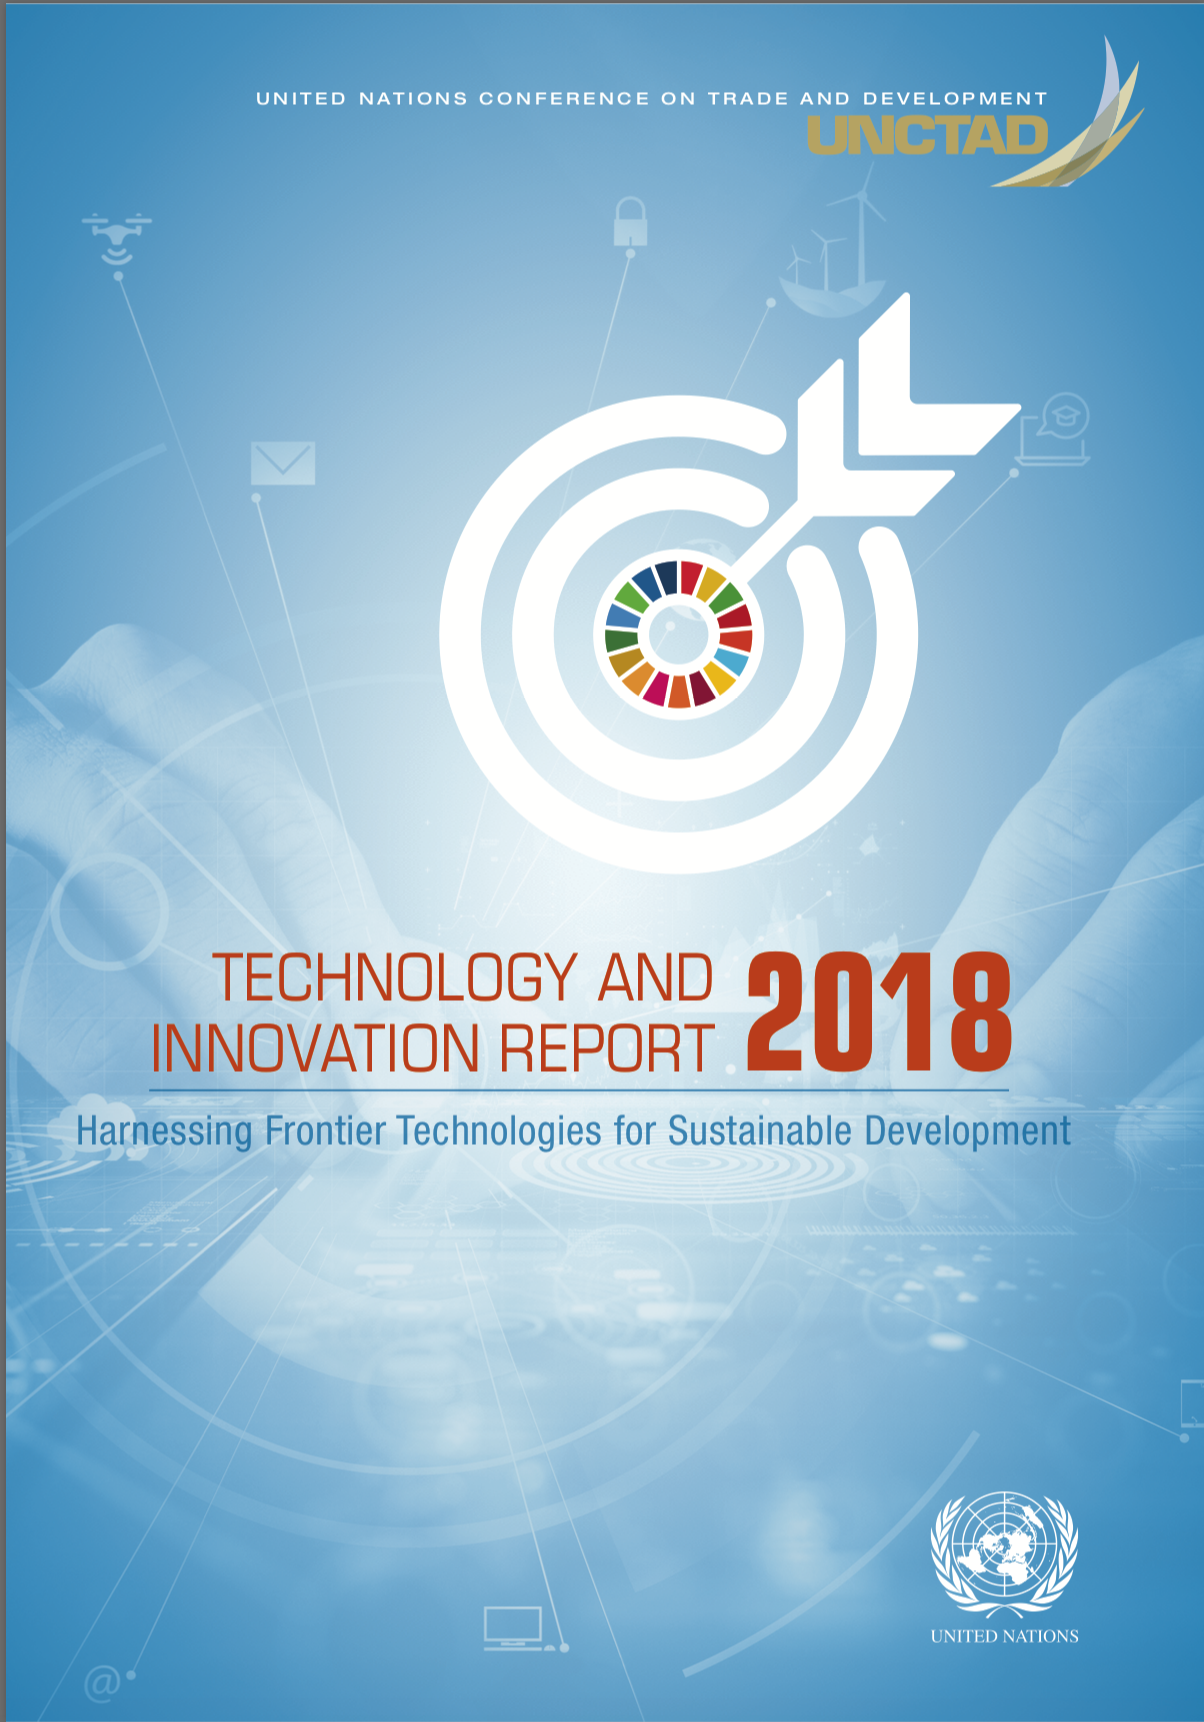 Technology and Innovation Report 2018